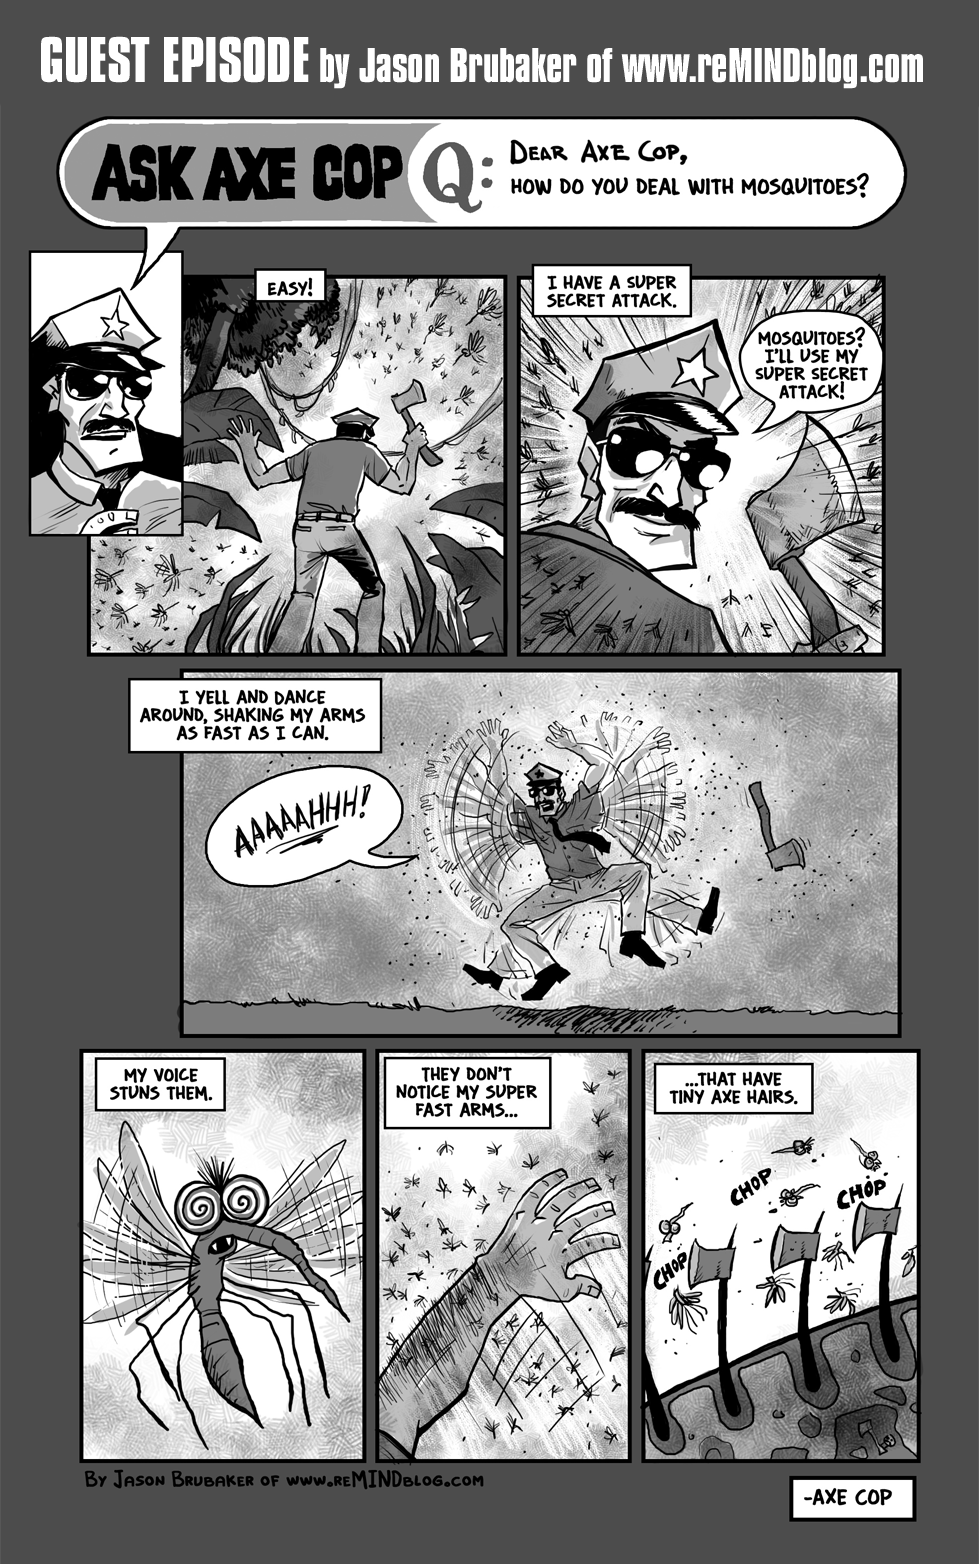 Axe Cop Guest Episode #4